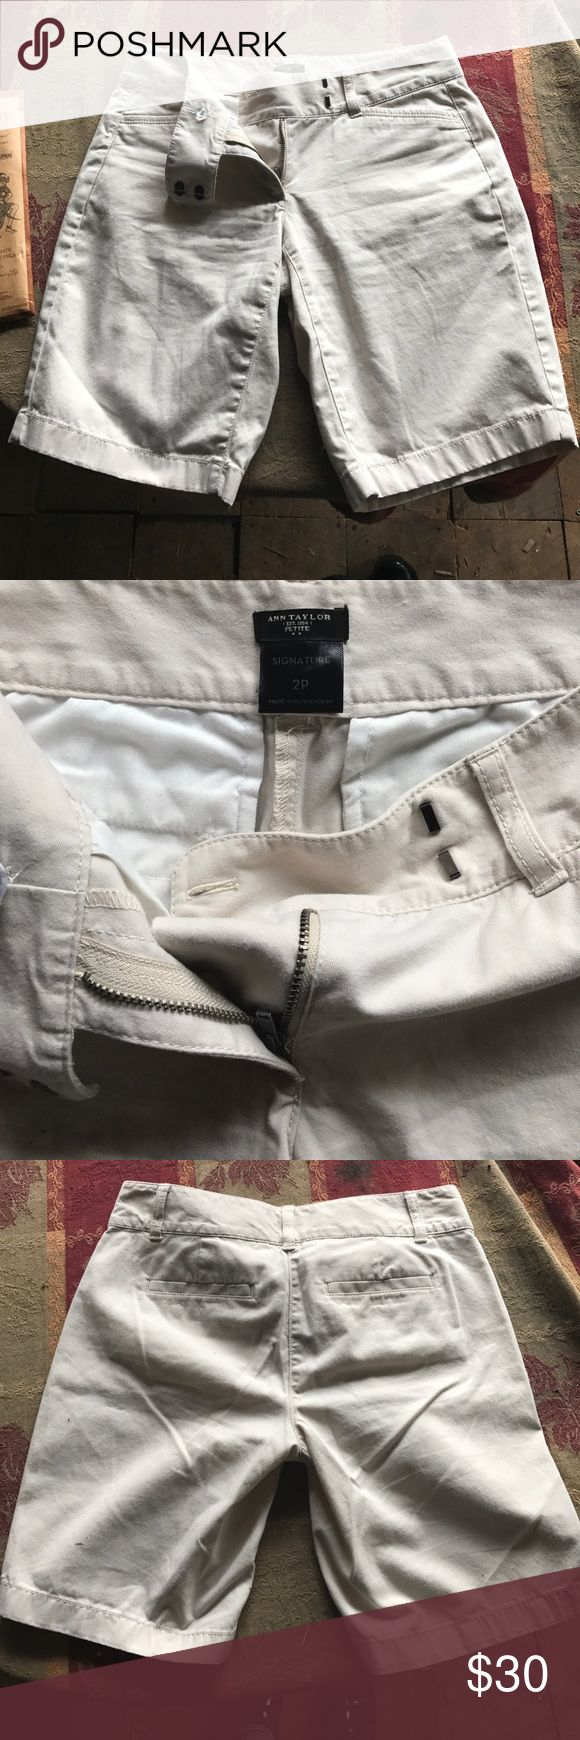 Ann Taylor light cream shorts All buttons and clips in tact. No stains and in New condition. Ann Taylor Shorts Bermudas